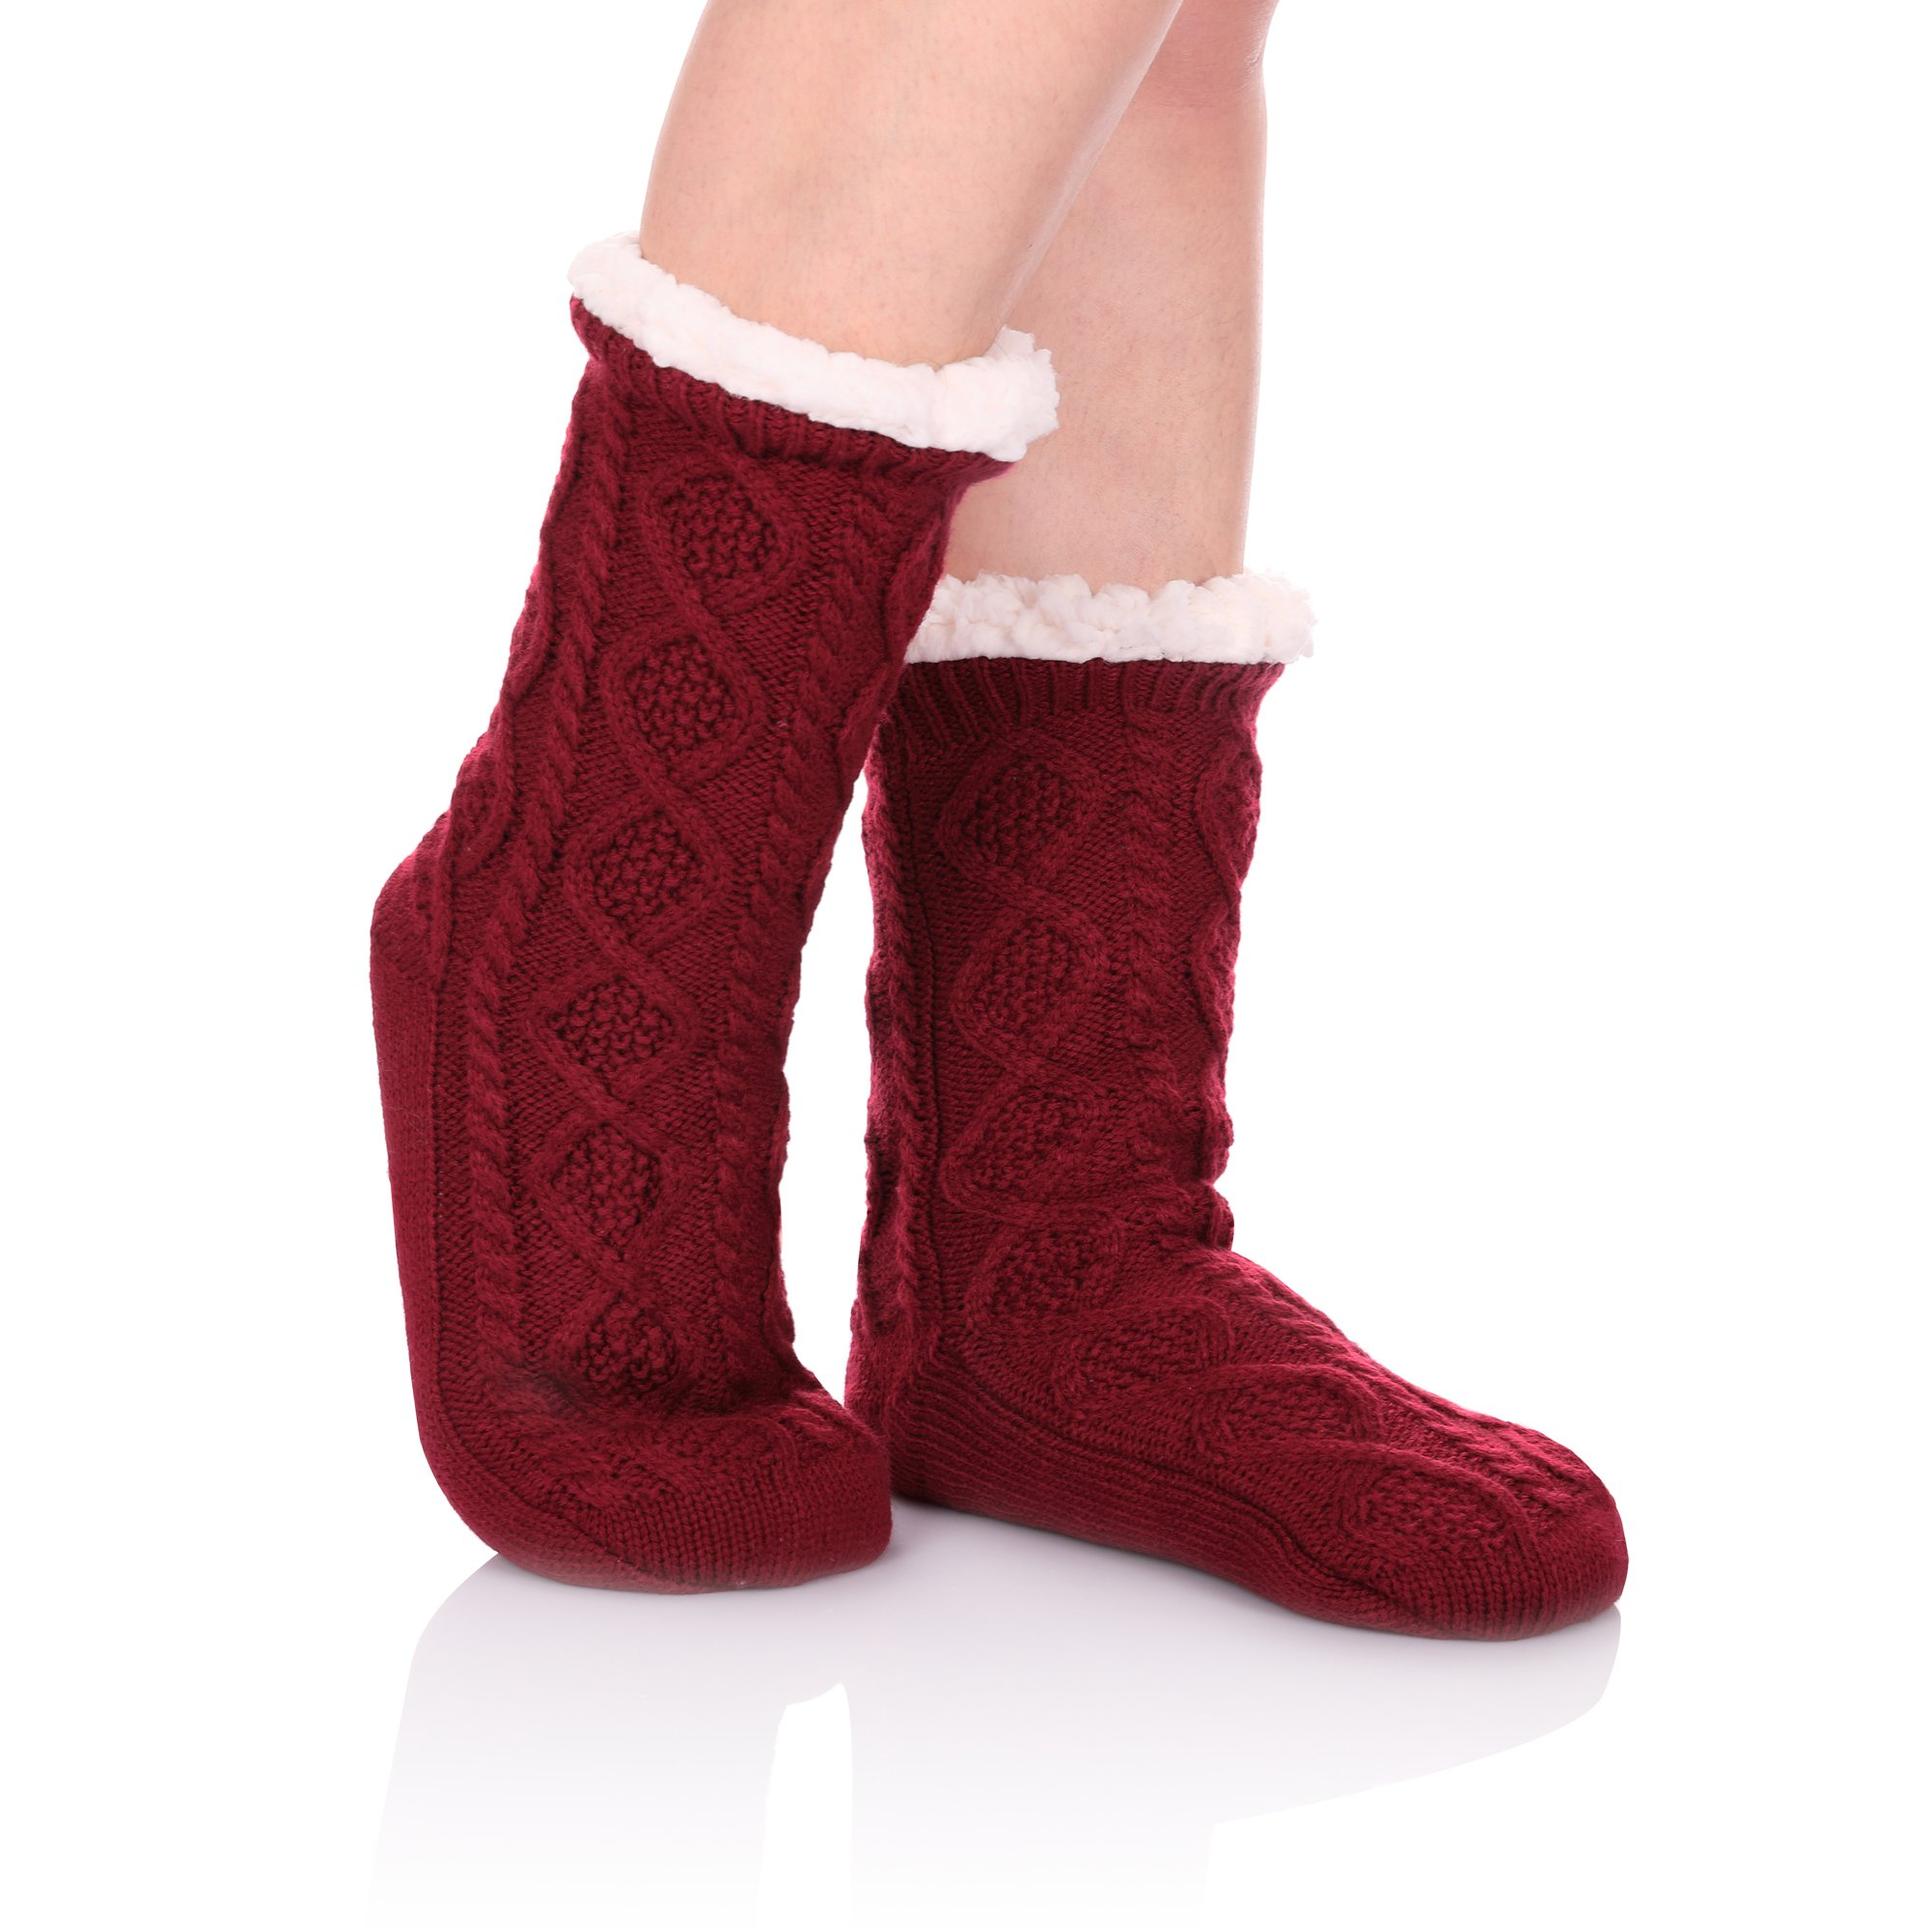 HERHILLY Women Cable Knit Slipper Socks - Super Soft Warm Fuzzy Home Socks with Gripper (Rose Red)